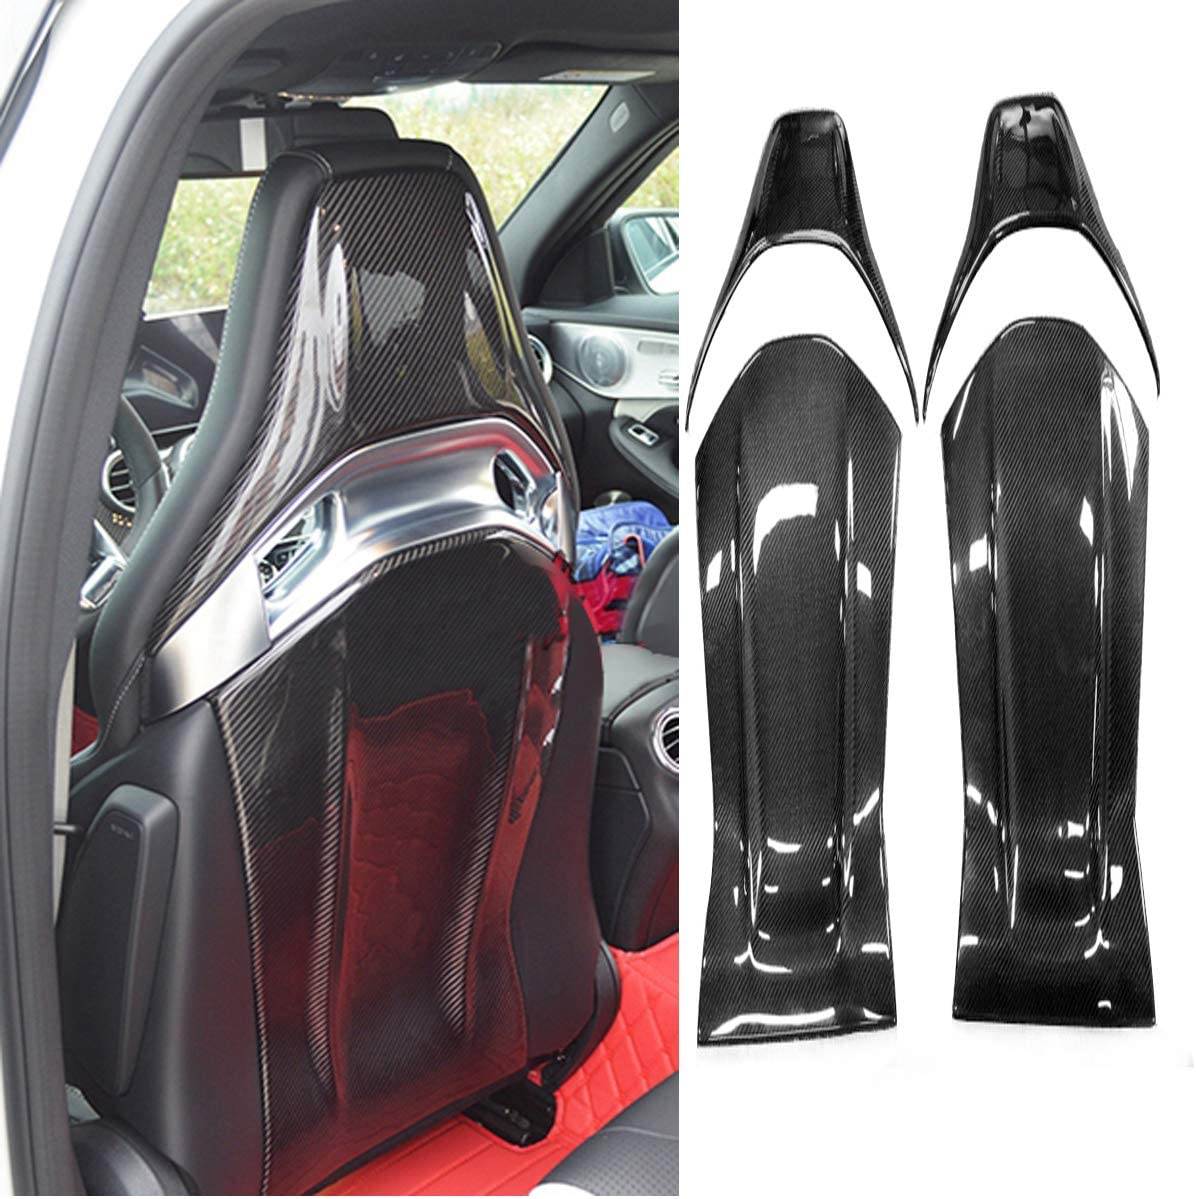 VAUXHALL CORSA HATCHBACK 06-ON BLACK SEAT COVERS WITH GREY PIPING